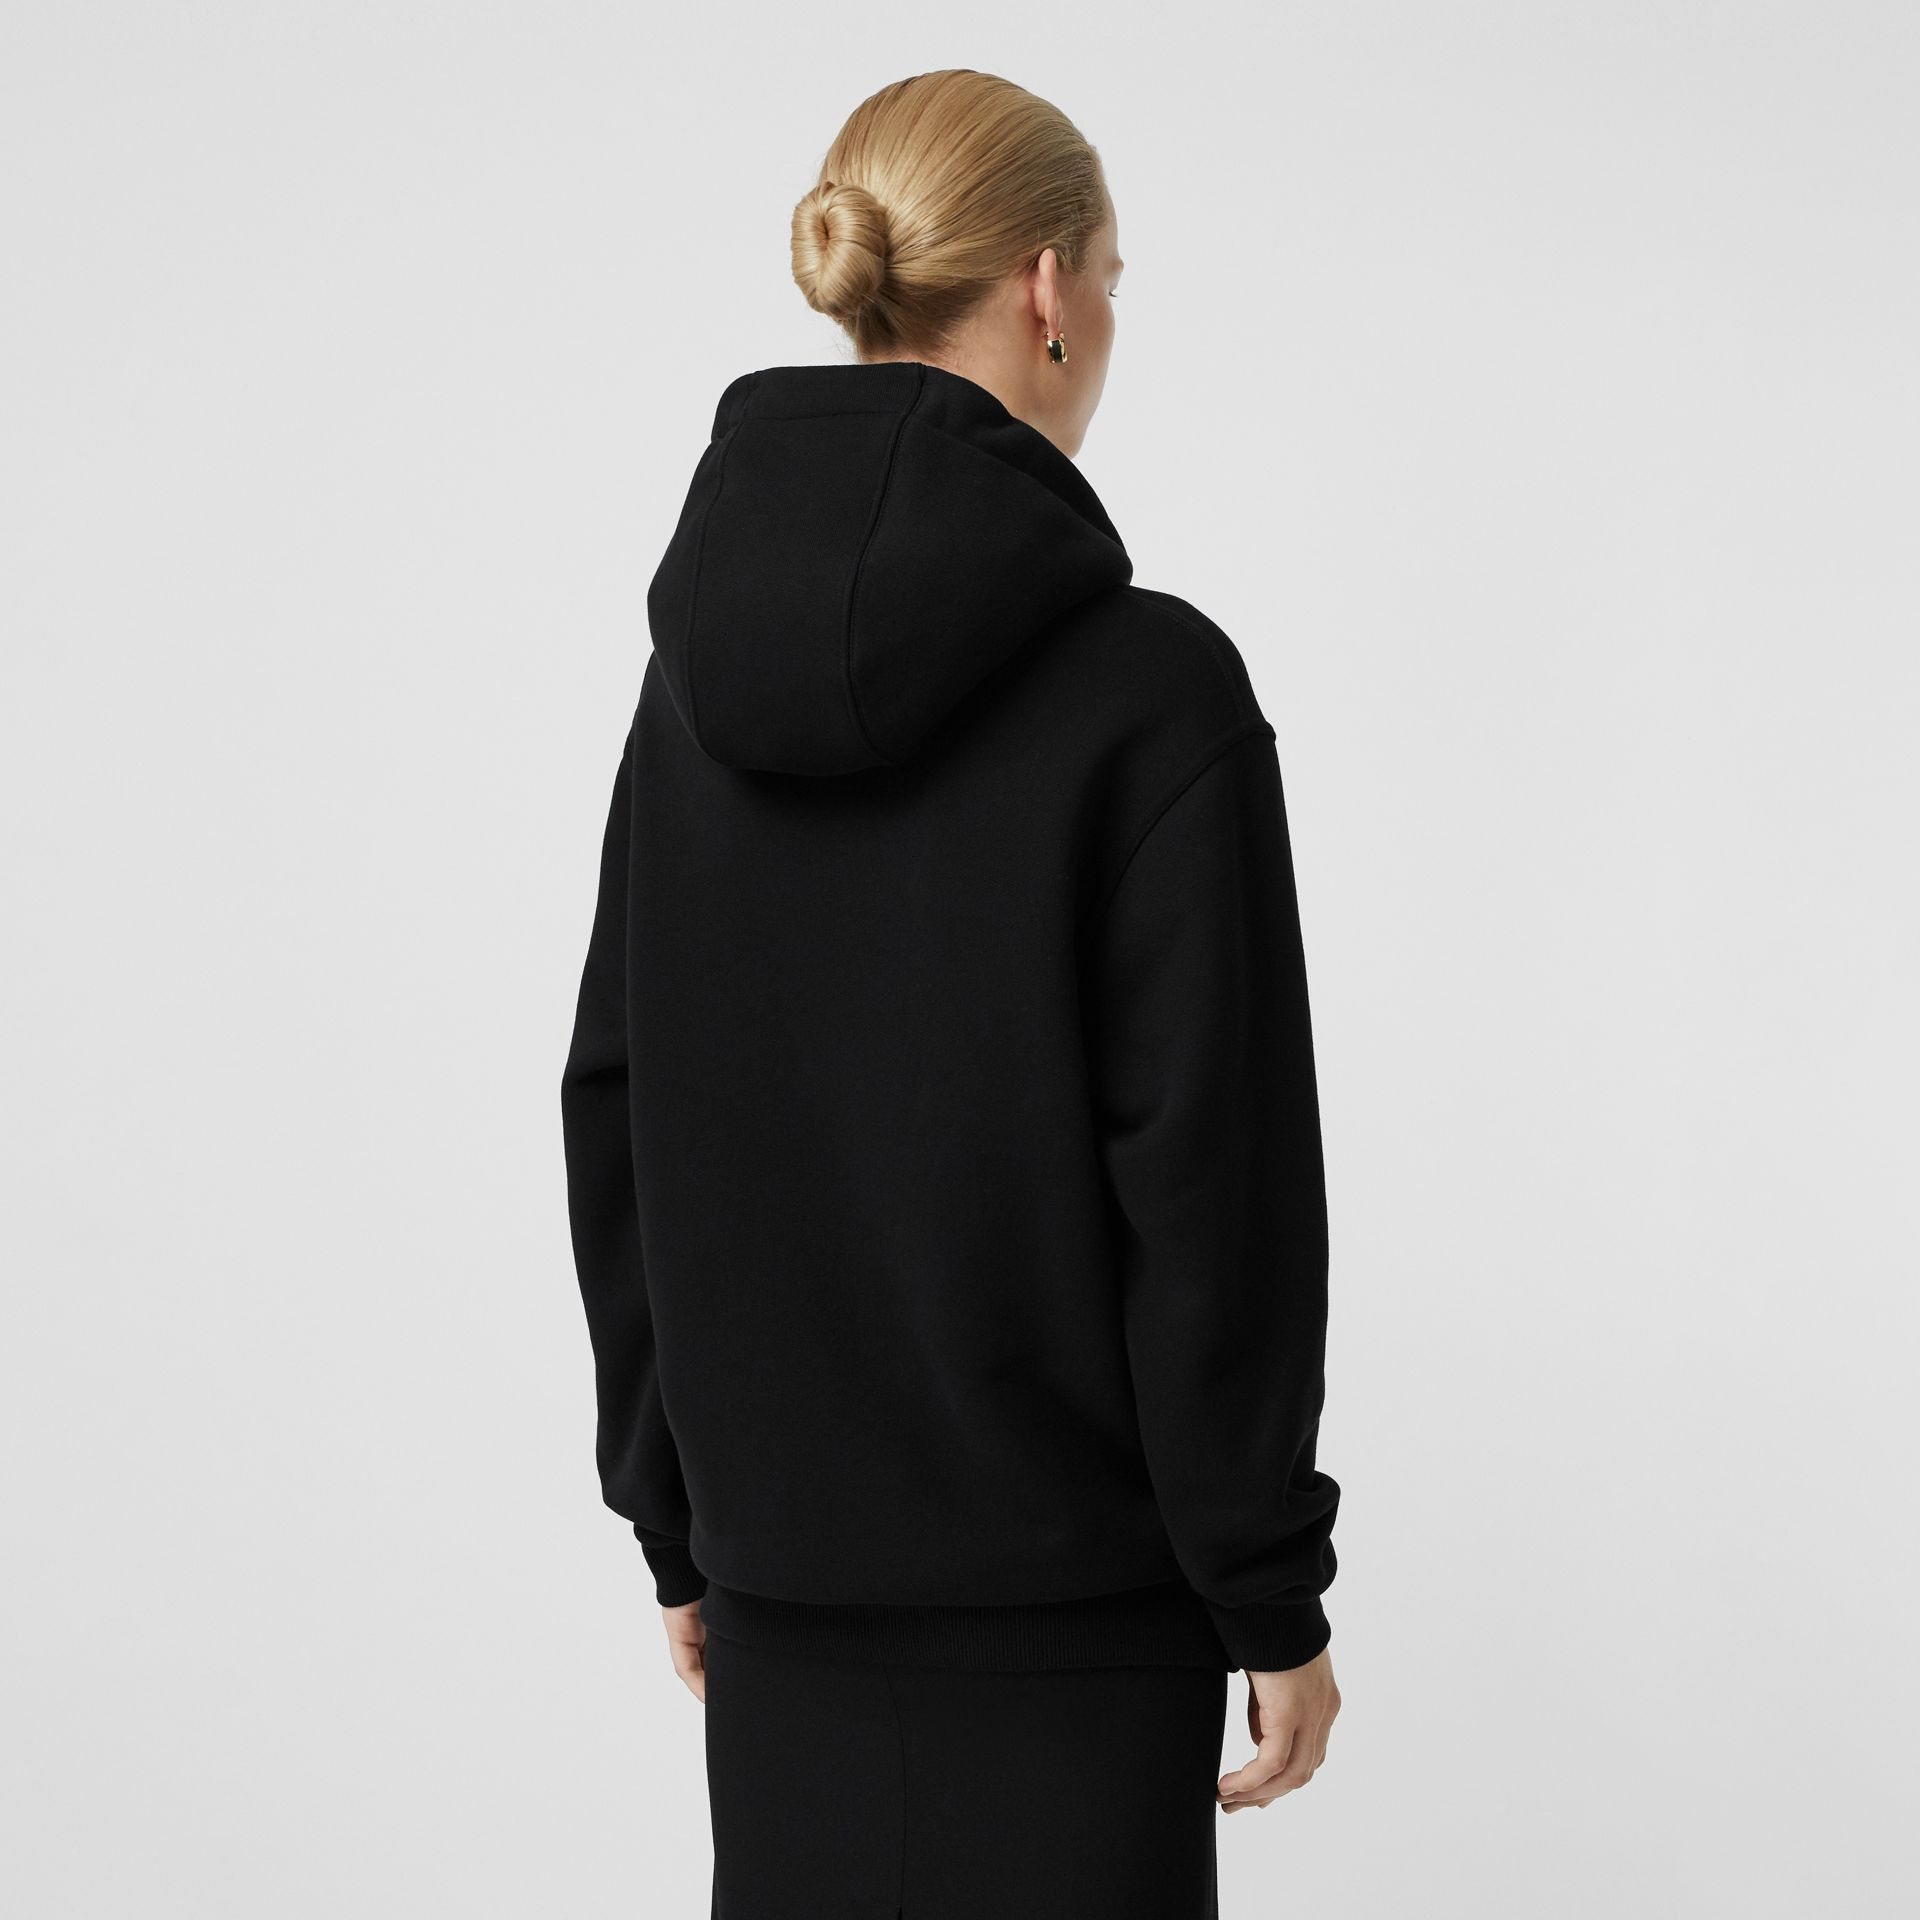 Chain Detail Cotton Oversized Hoodie in Black - Women | Burberry - gallery image 2